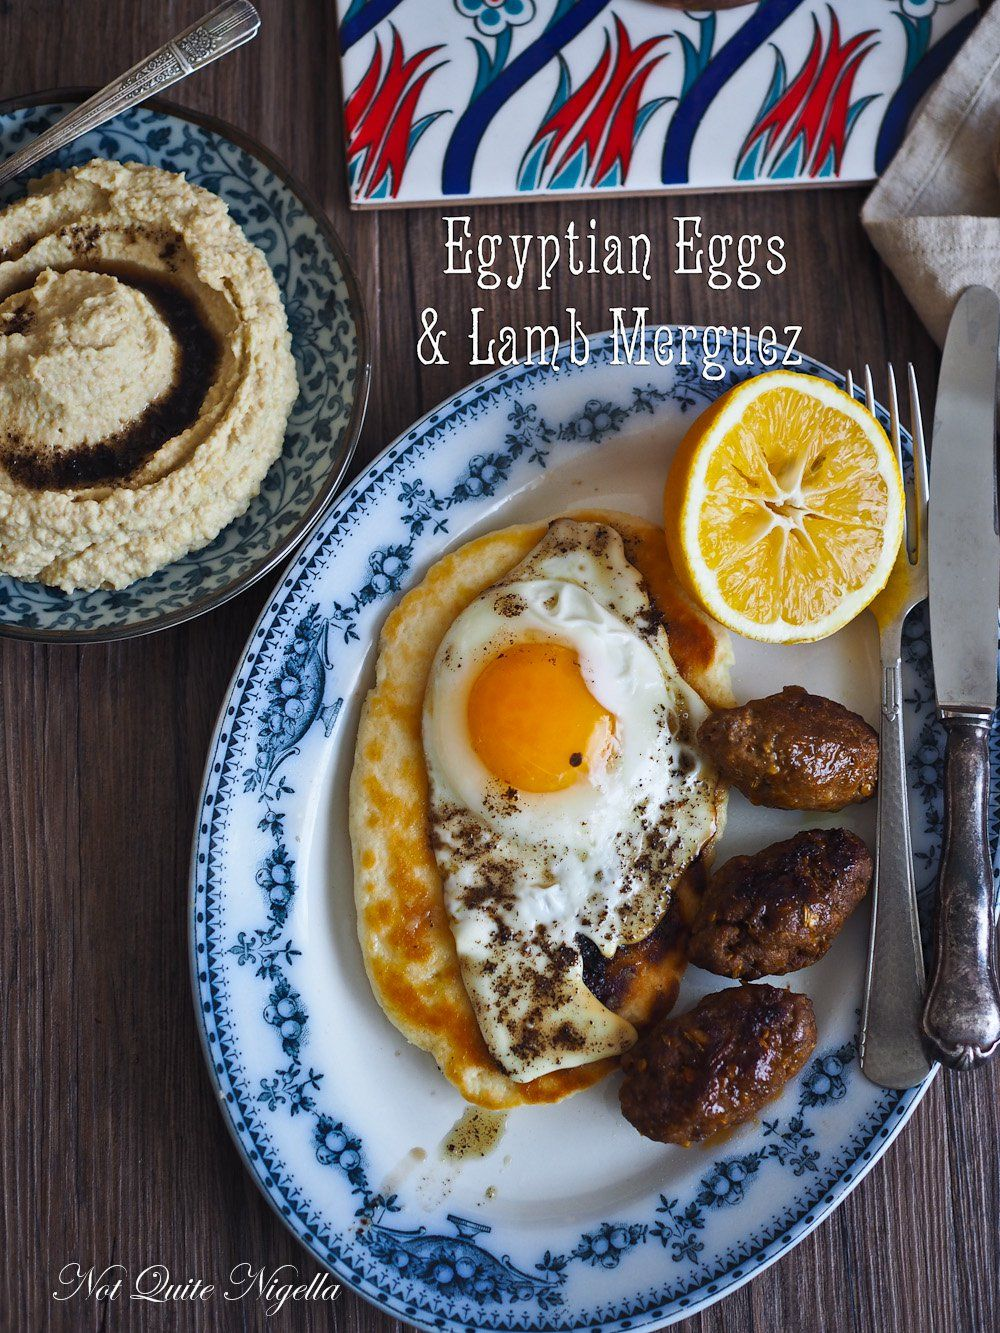 The Breakfast Club Egyptian Eggs Home Made Merguez Sausages